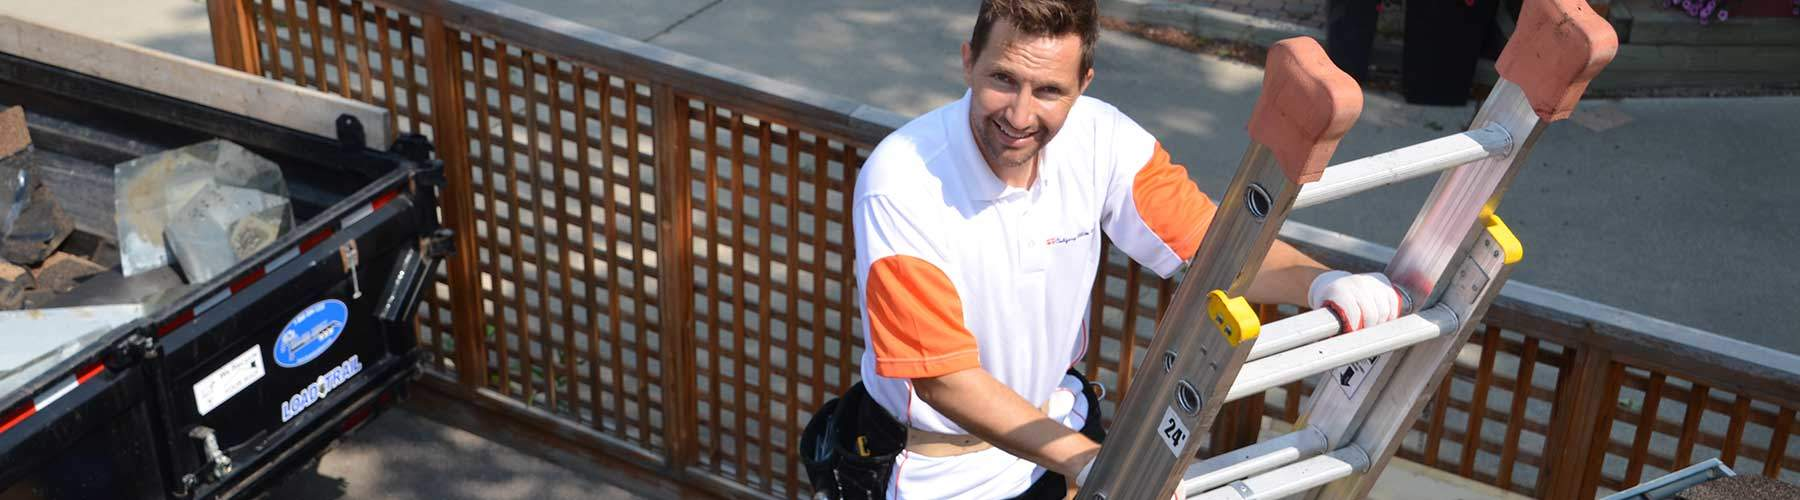 Calgary Elite Roofing Repair Service